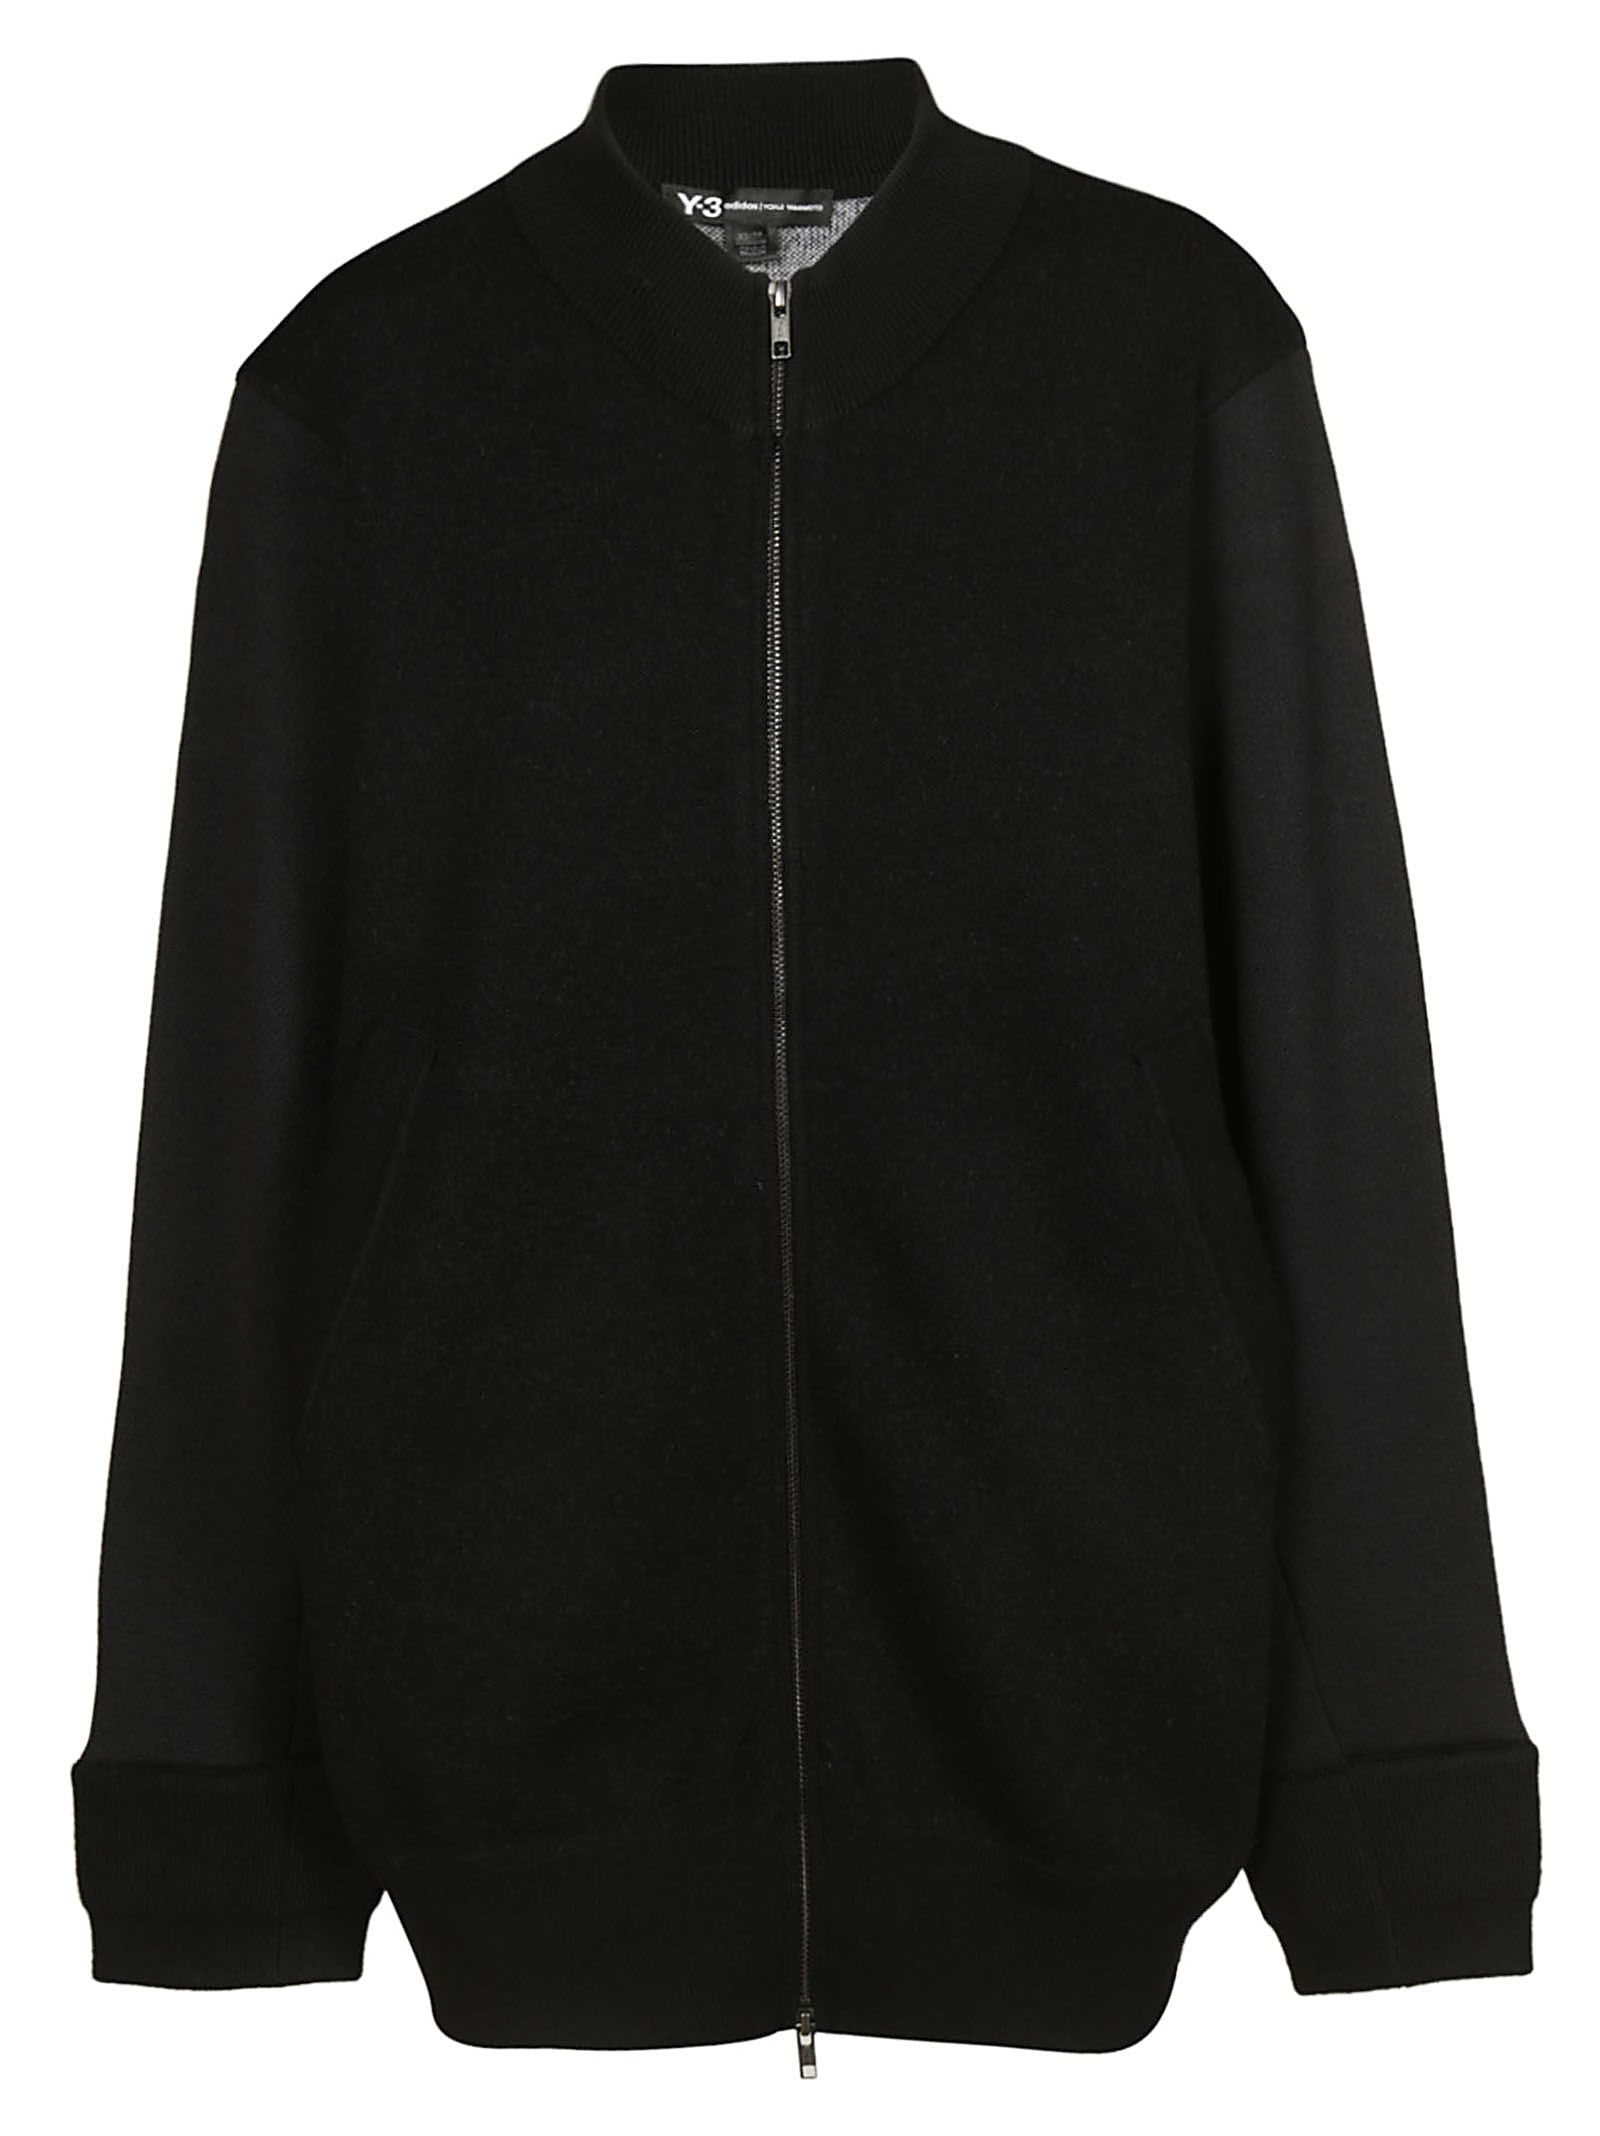 Y-3 ZIPPED SWEATER